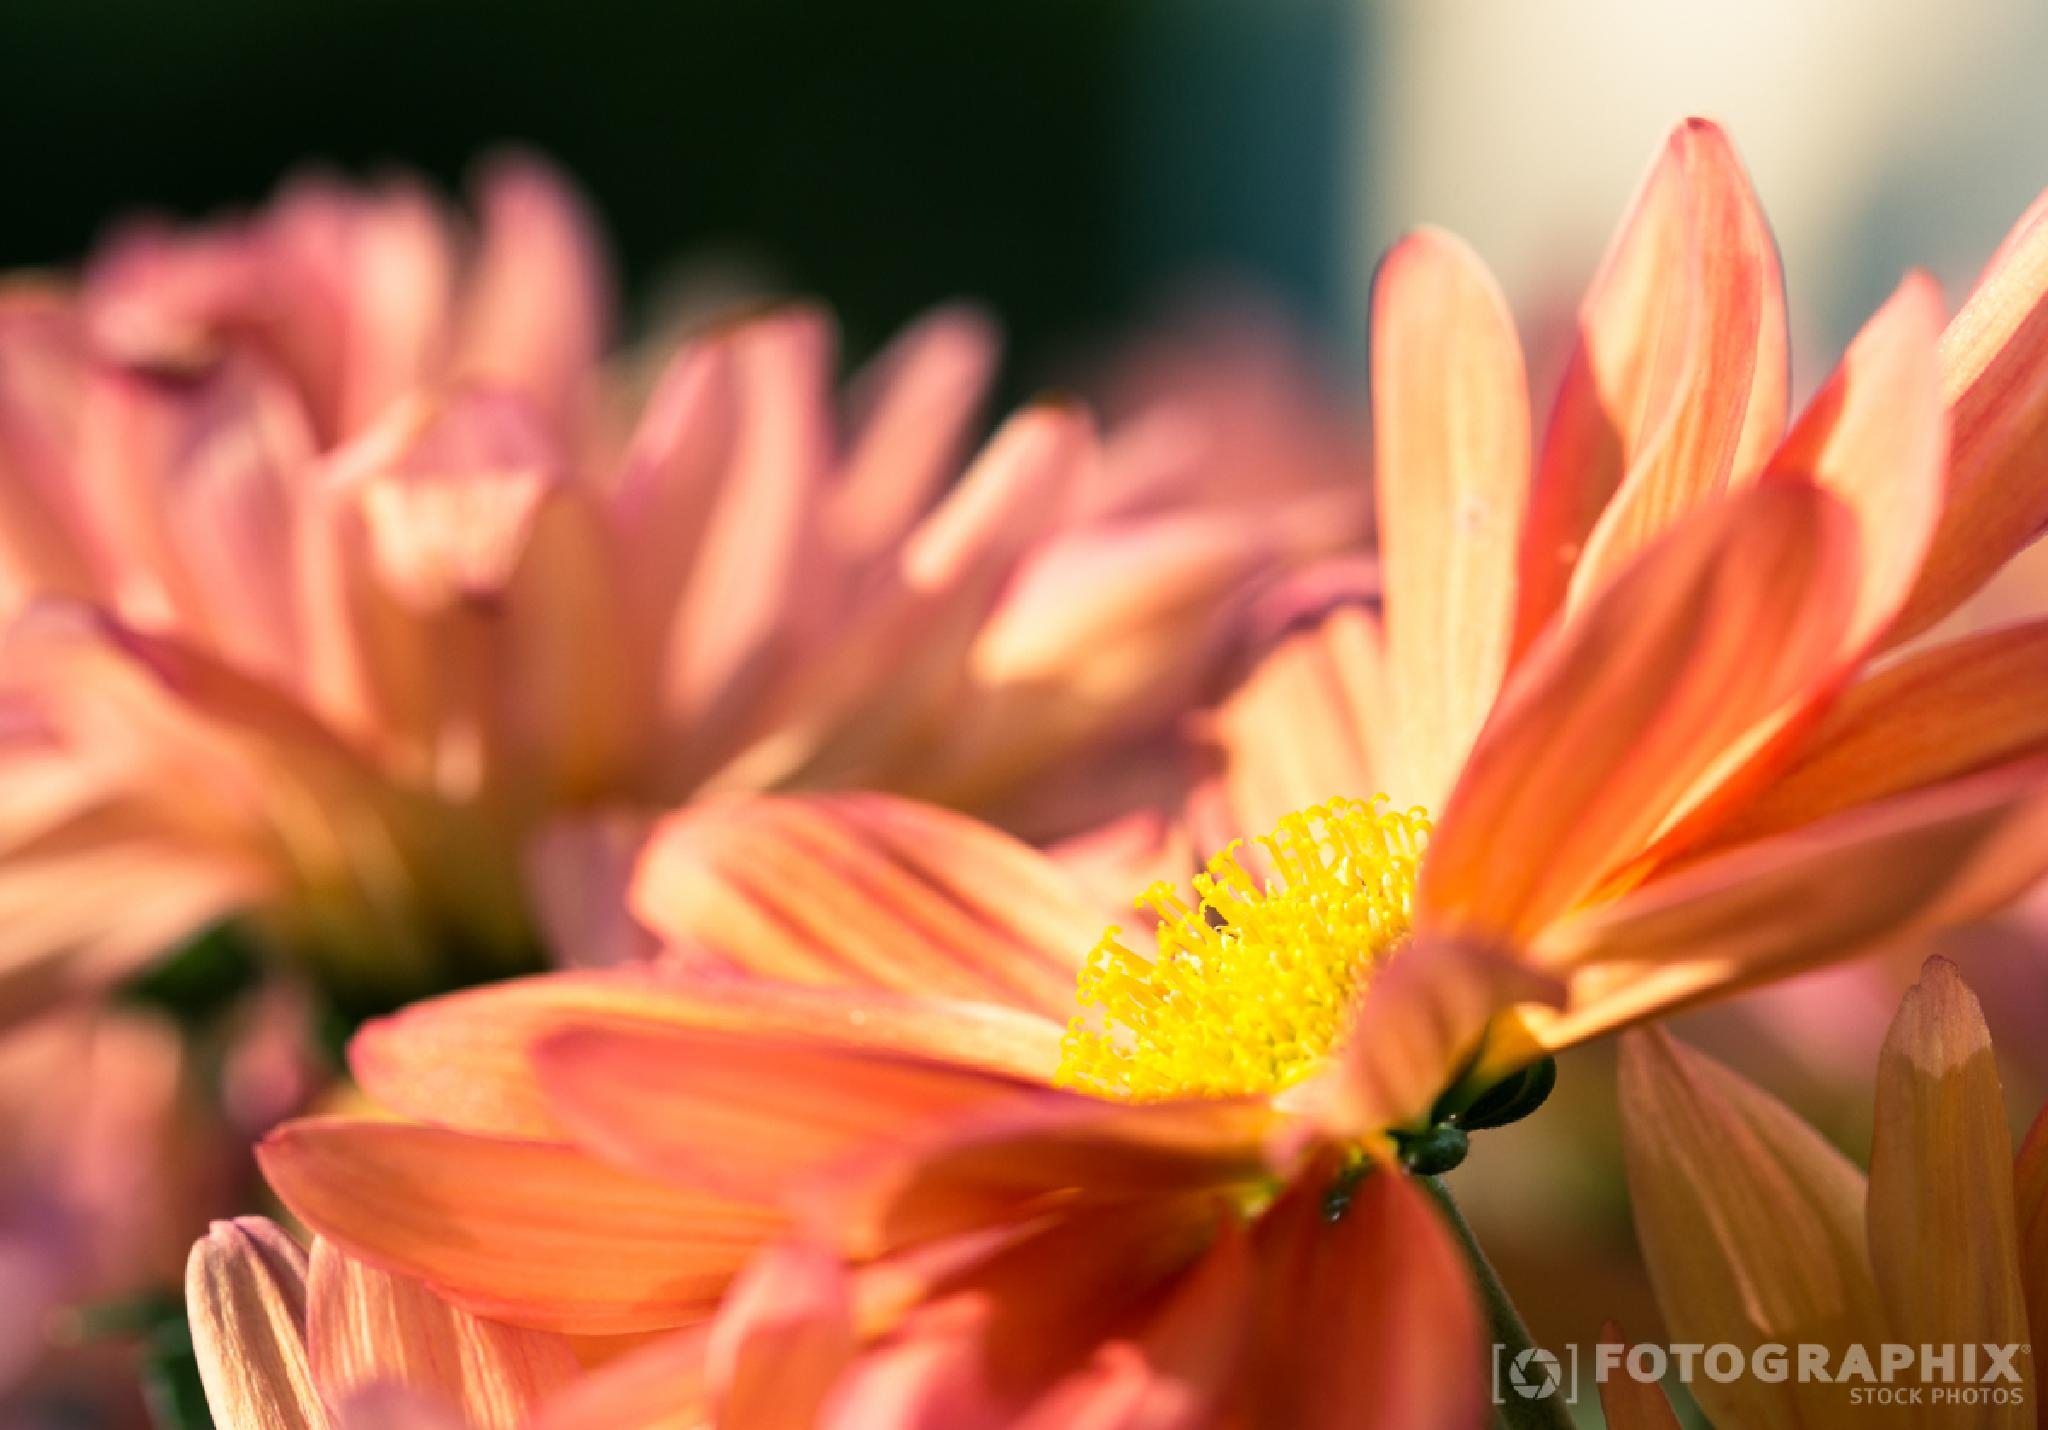 Chrysantheme | Chrysanthemum by fotographix